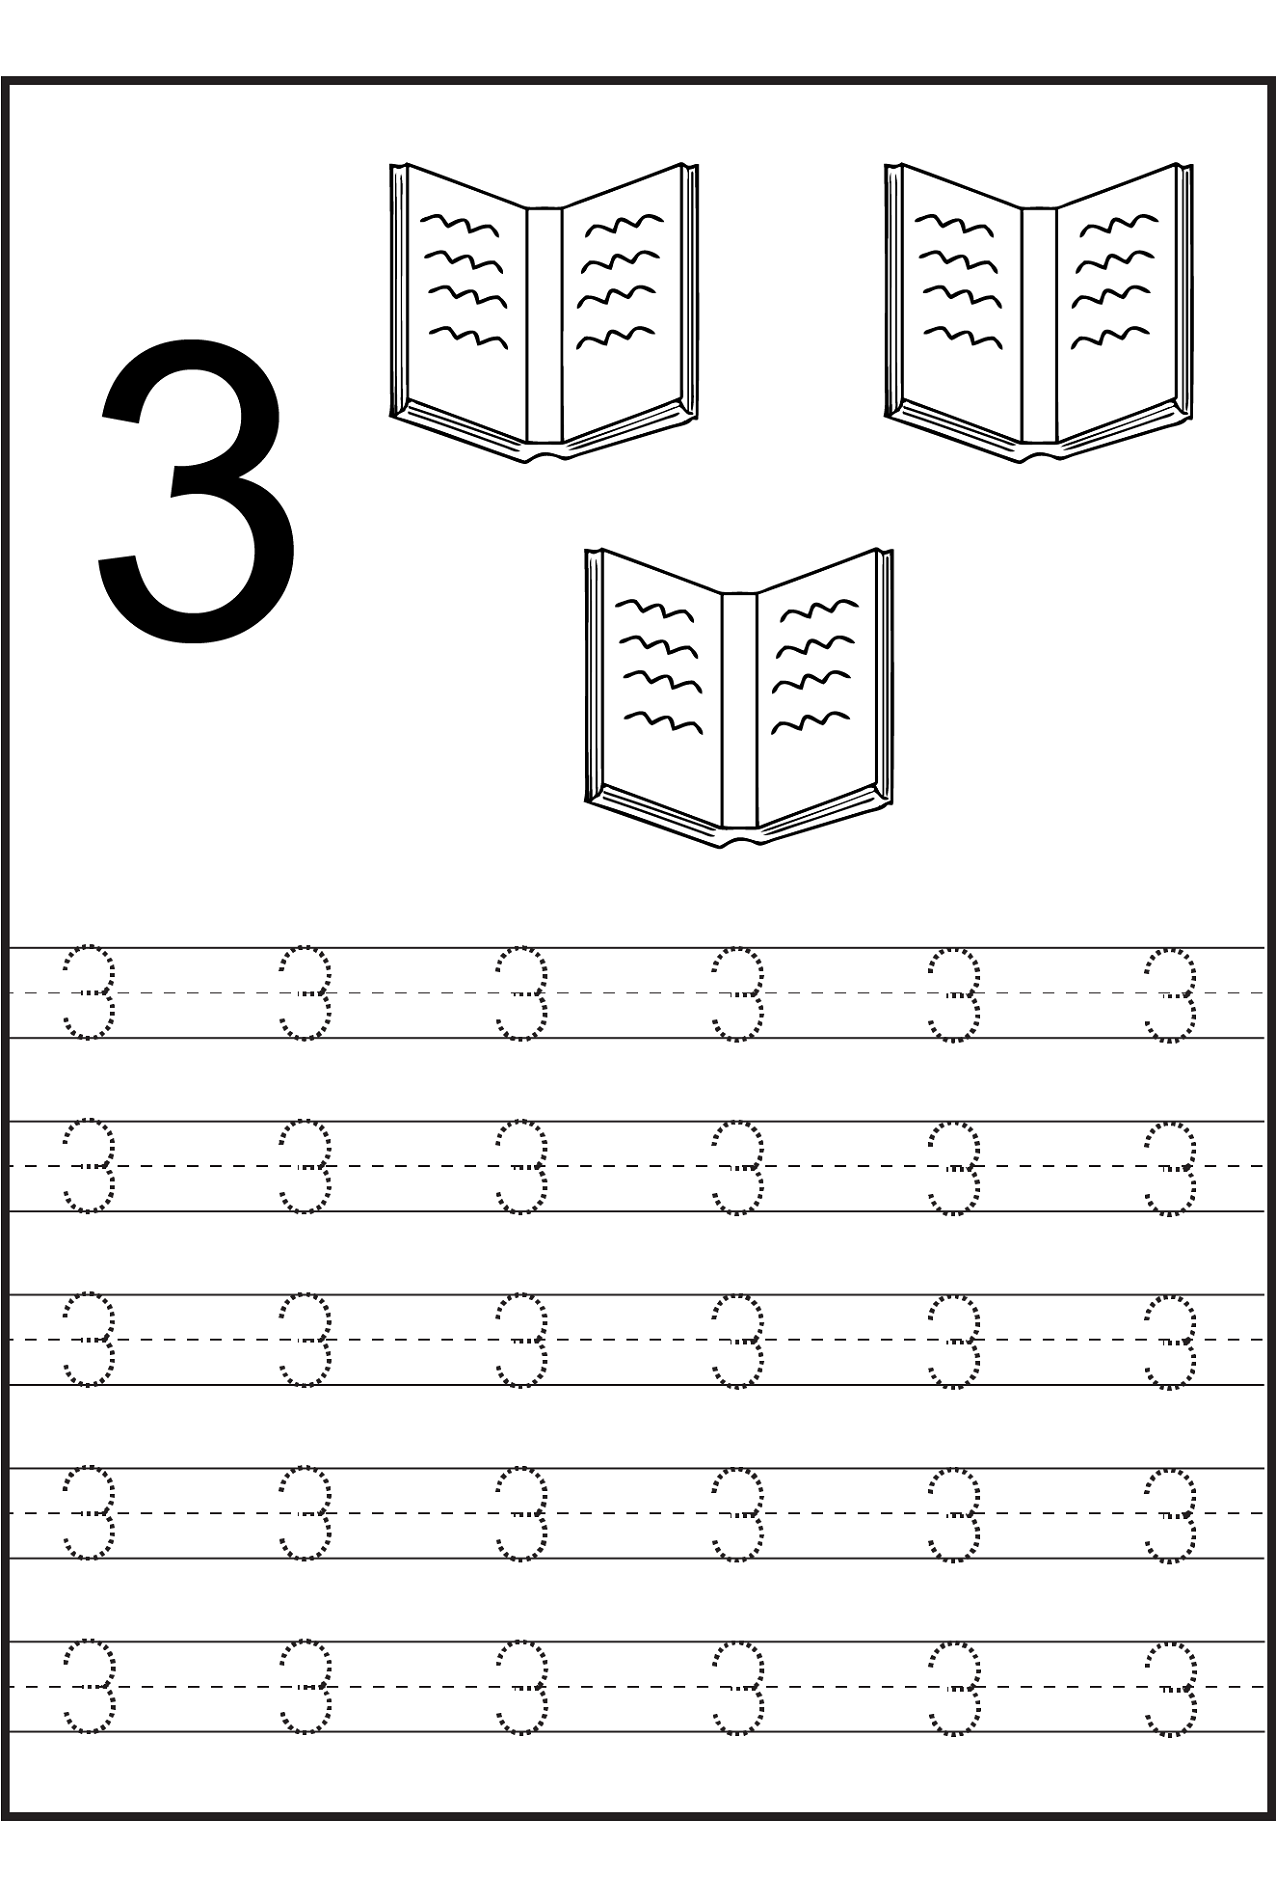 Worksheets for 2 Years Old Numbers preschool